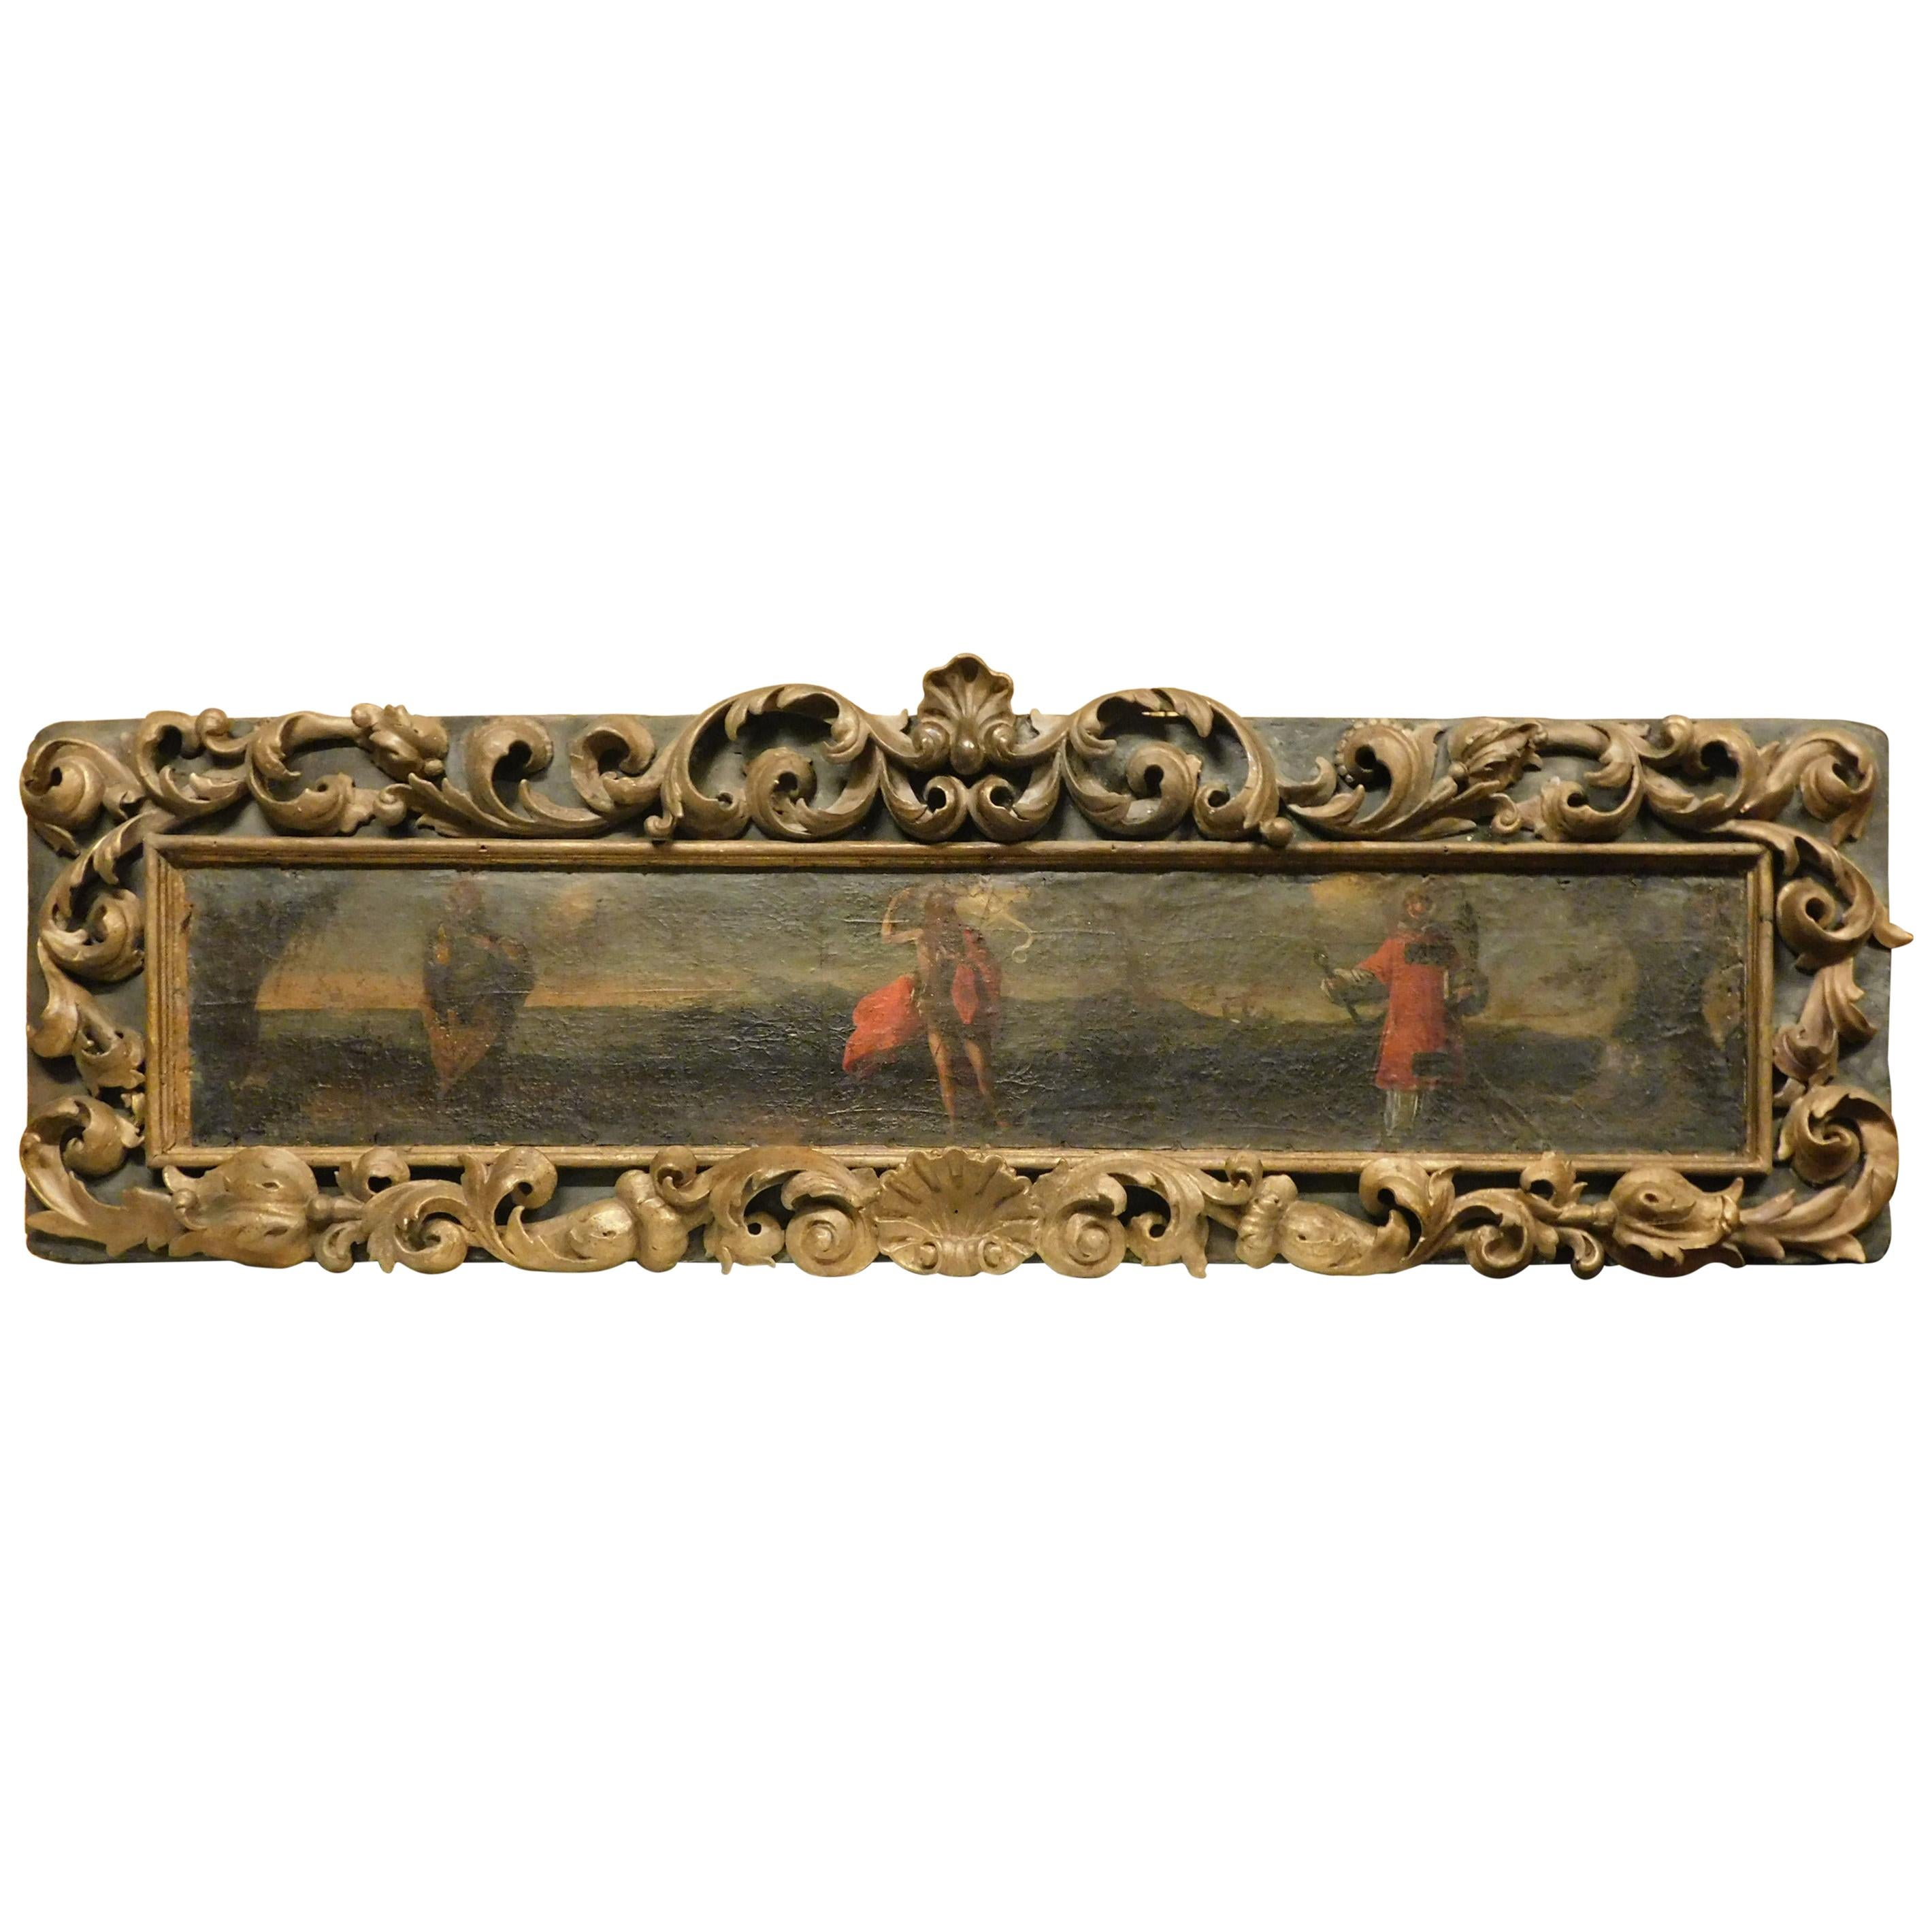 Antique Canvas Panel Painted on Wood, Rich Gold Frame, 18th Century Italy